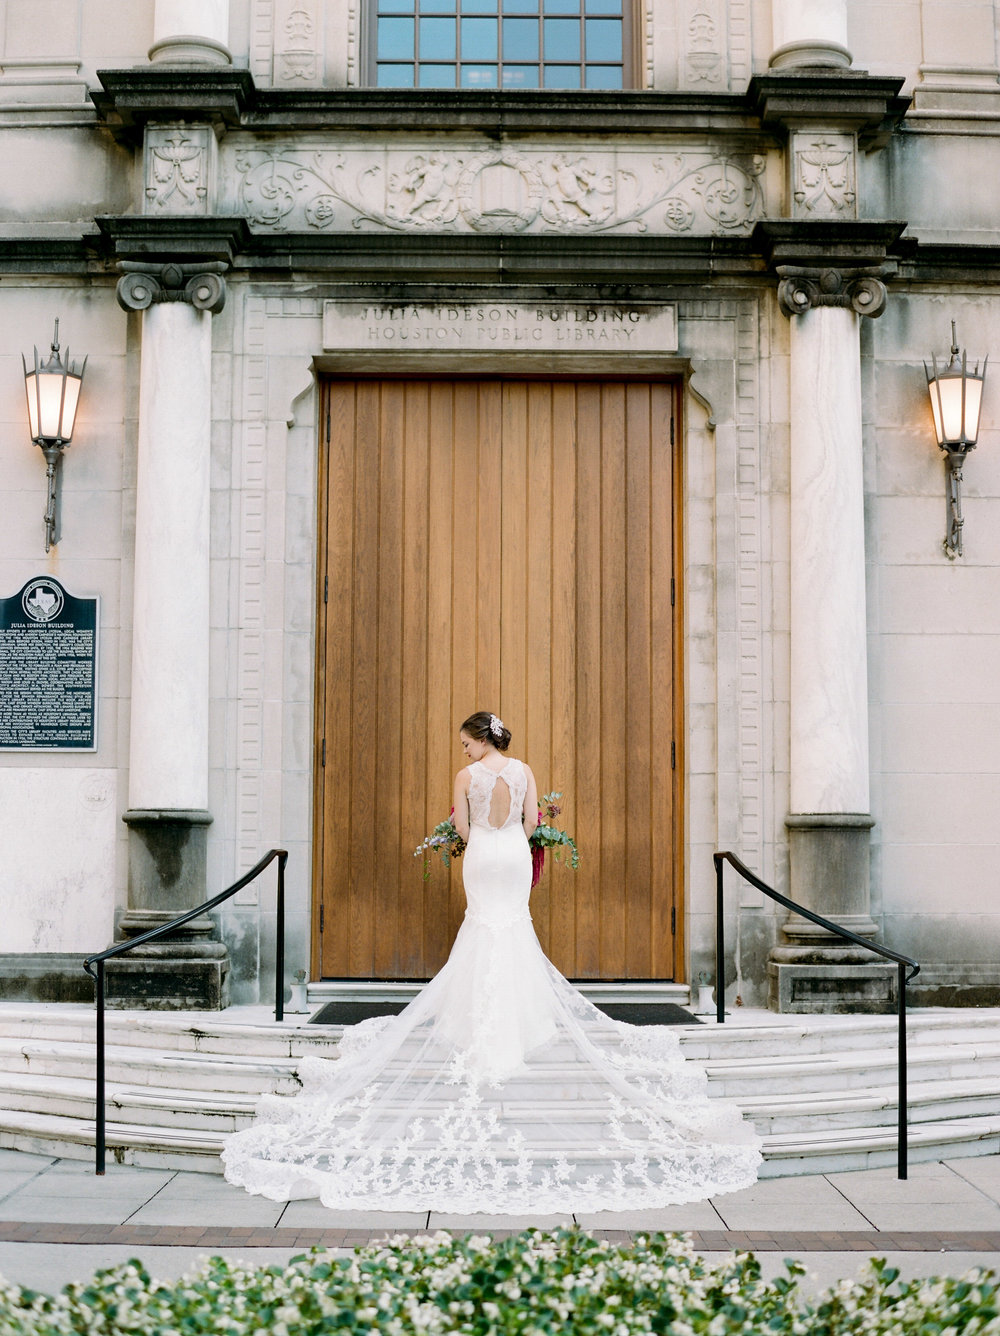 The-Knot-Texas-Fine-Art-Wedding-Film-Destination-Photographer-Houston-Austin-Dallas-New-Orleans-Julia-Ideson-Library-Event-Dana-Josh-Fernandez-Photograph-Top-Best-19.jpg